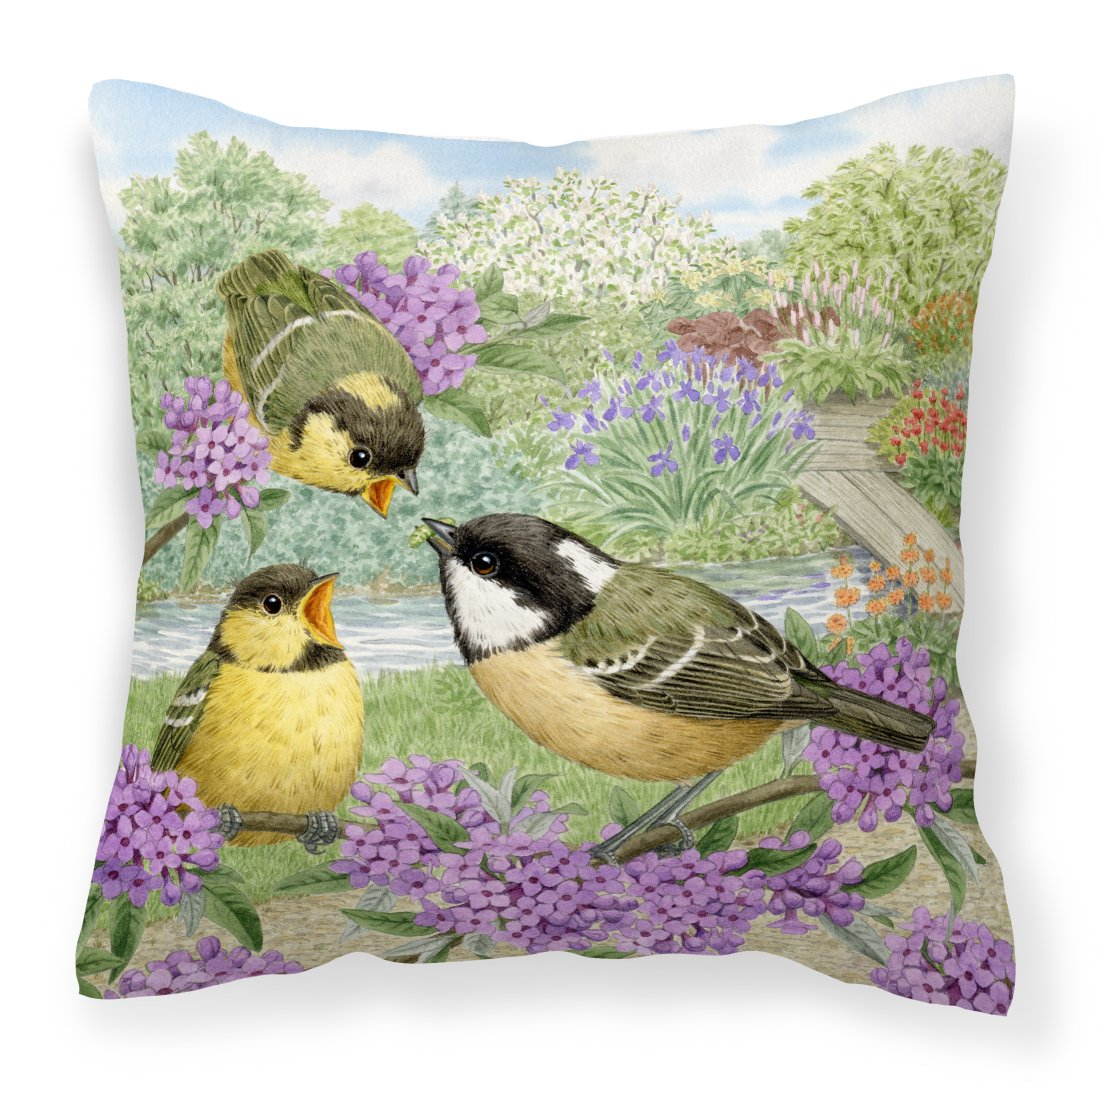 Buy this Coal Tits Feeding Time Canvas Decorative Pillow